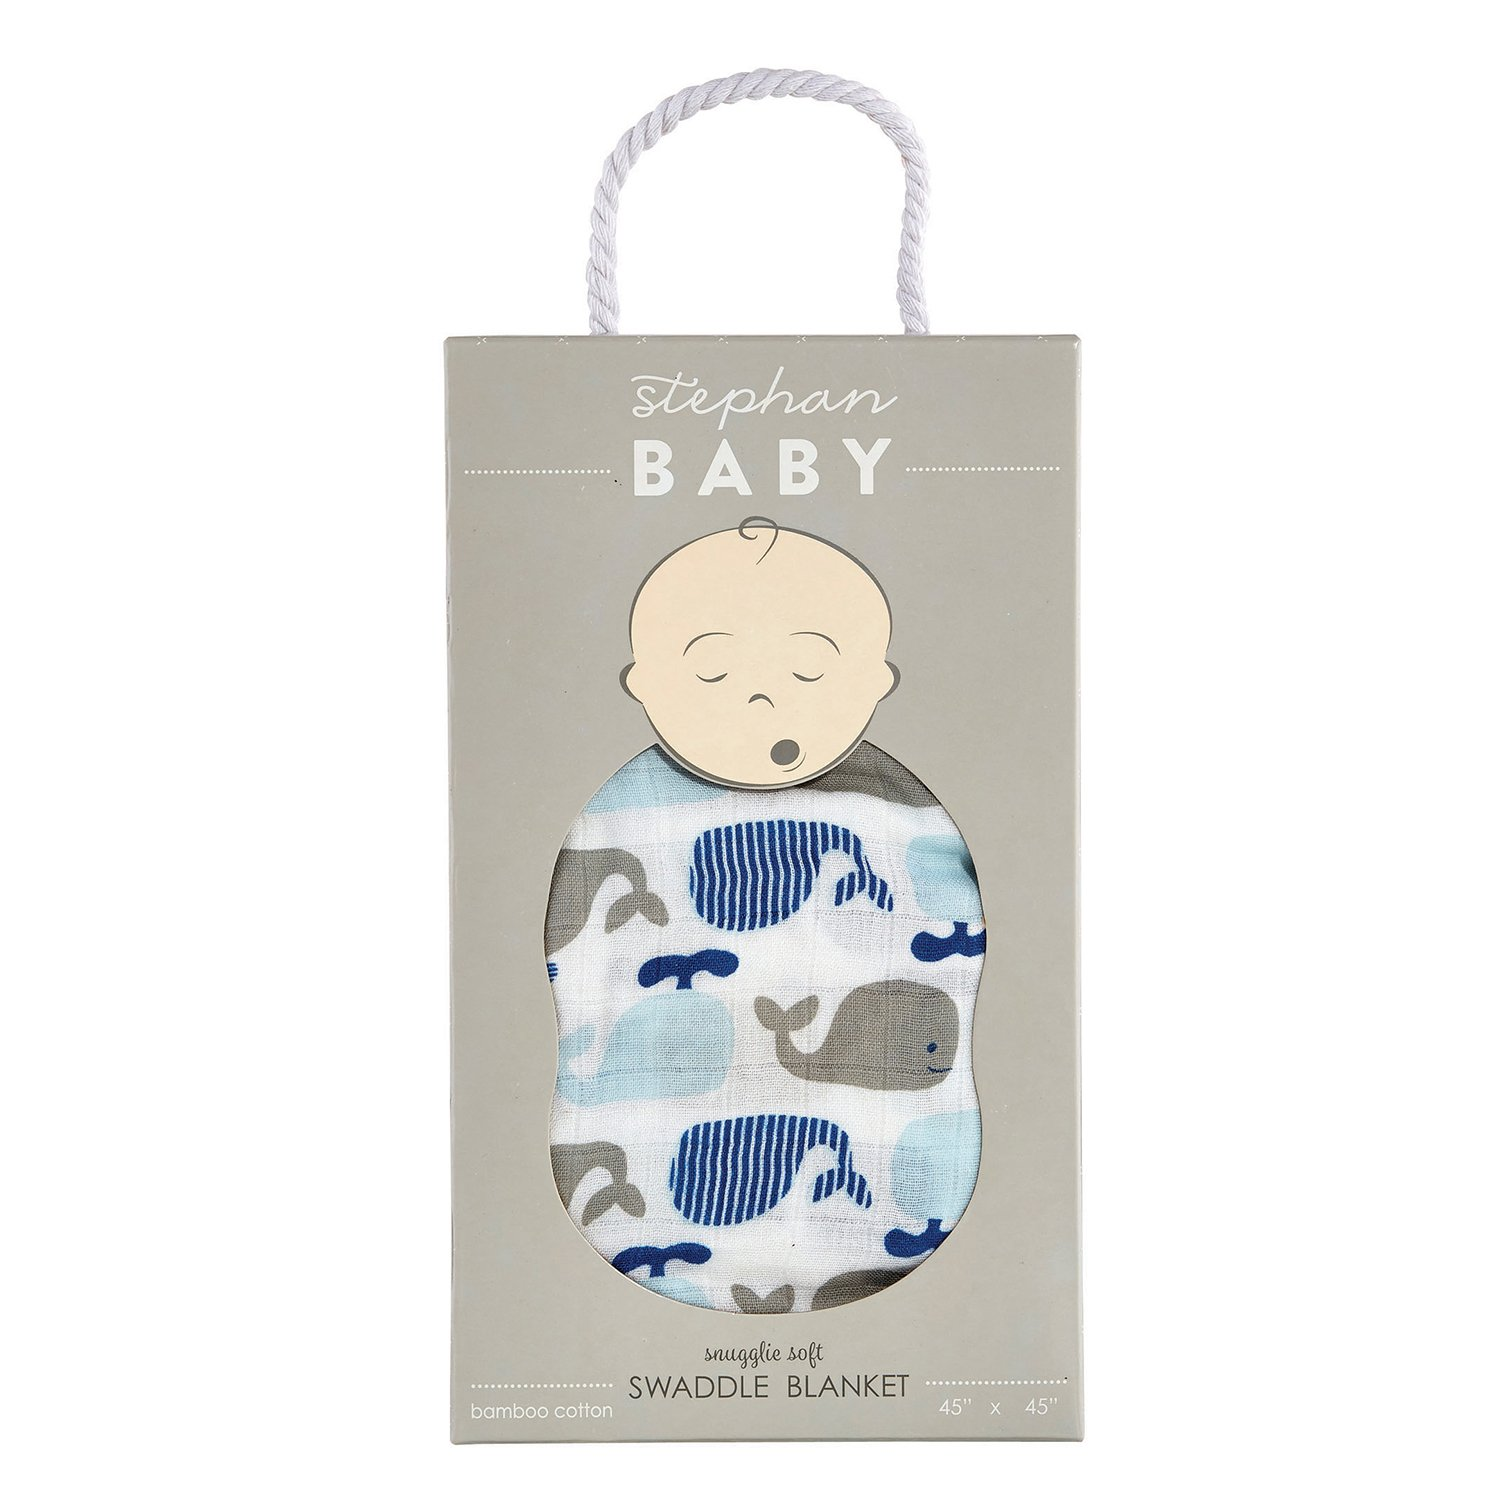 Stephan Baby Viscose Cotton Muslin Swaddle Blanket, Whales